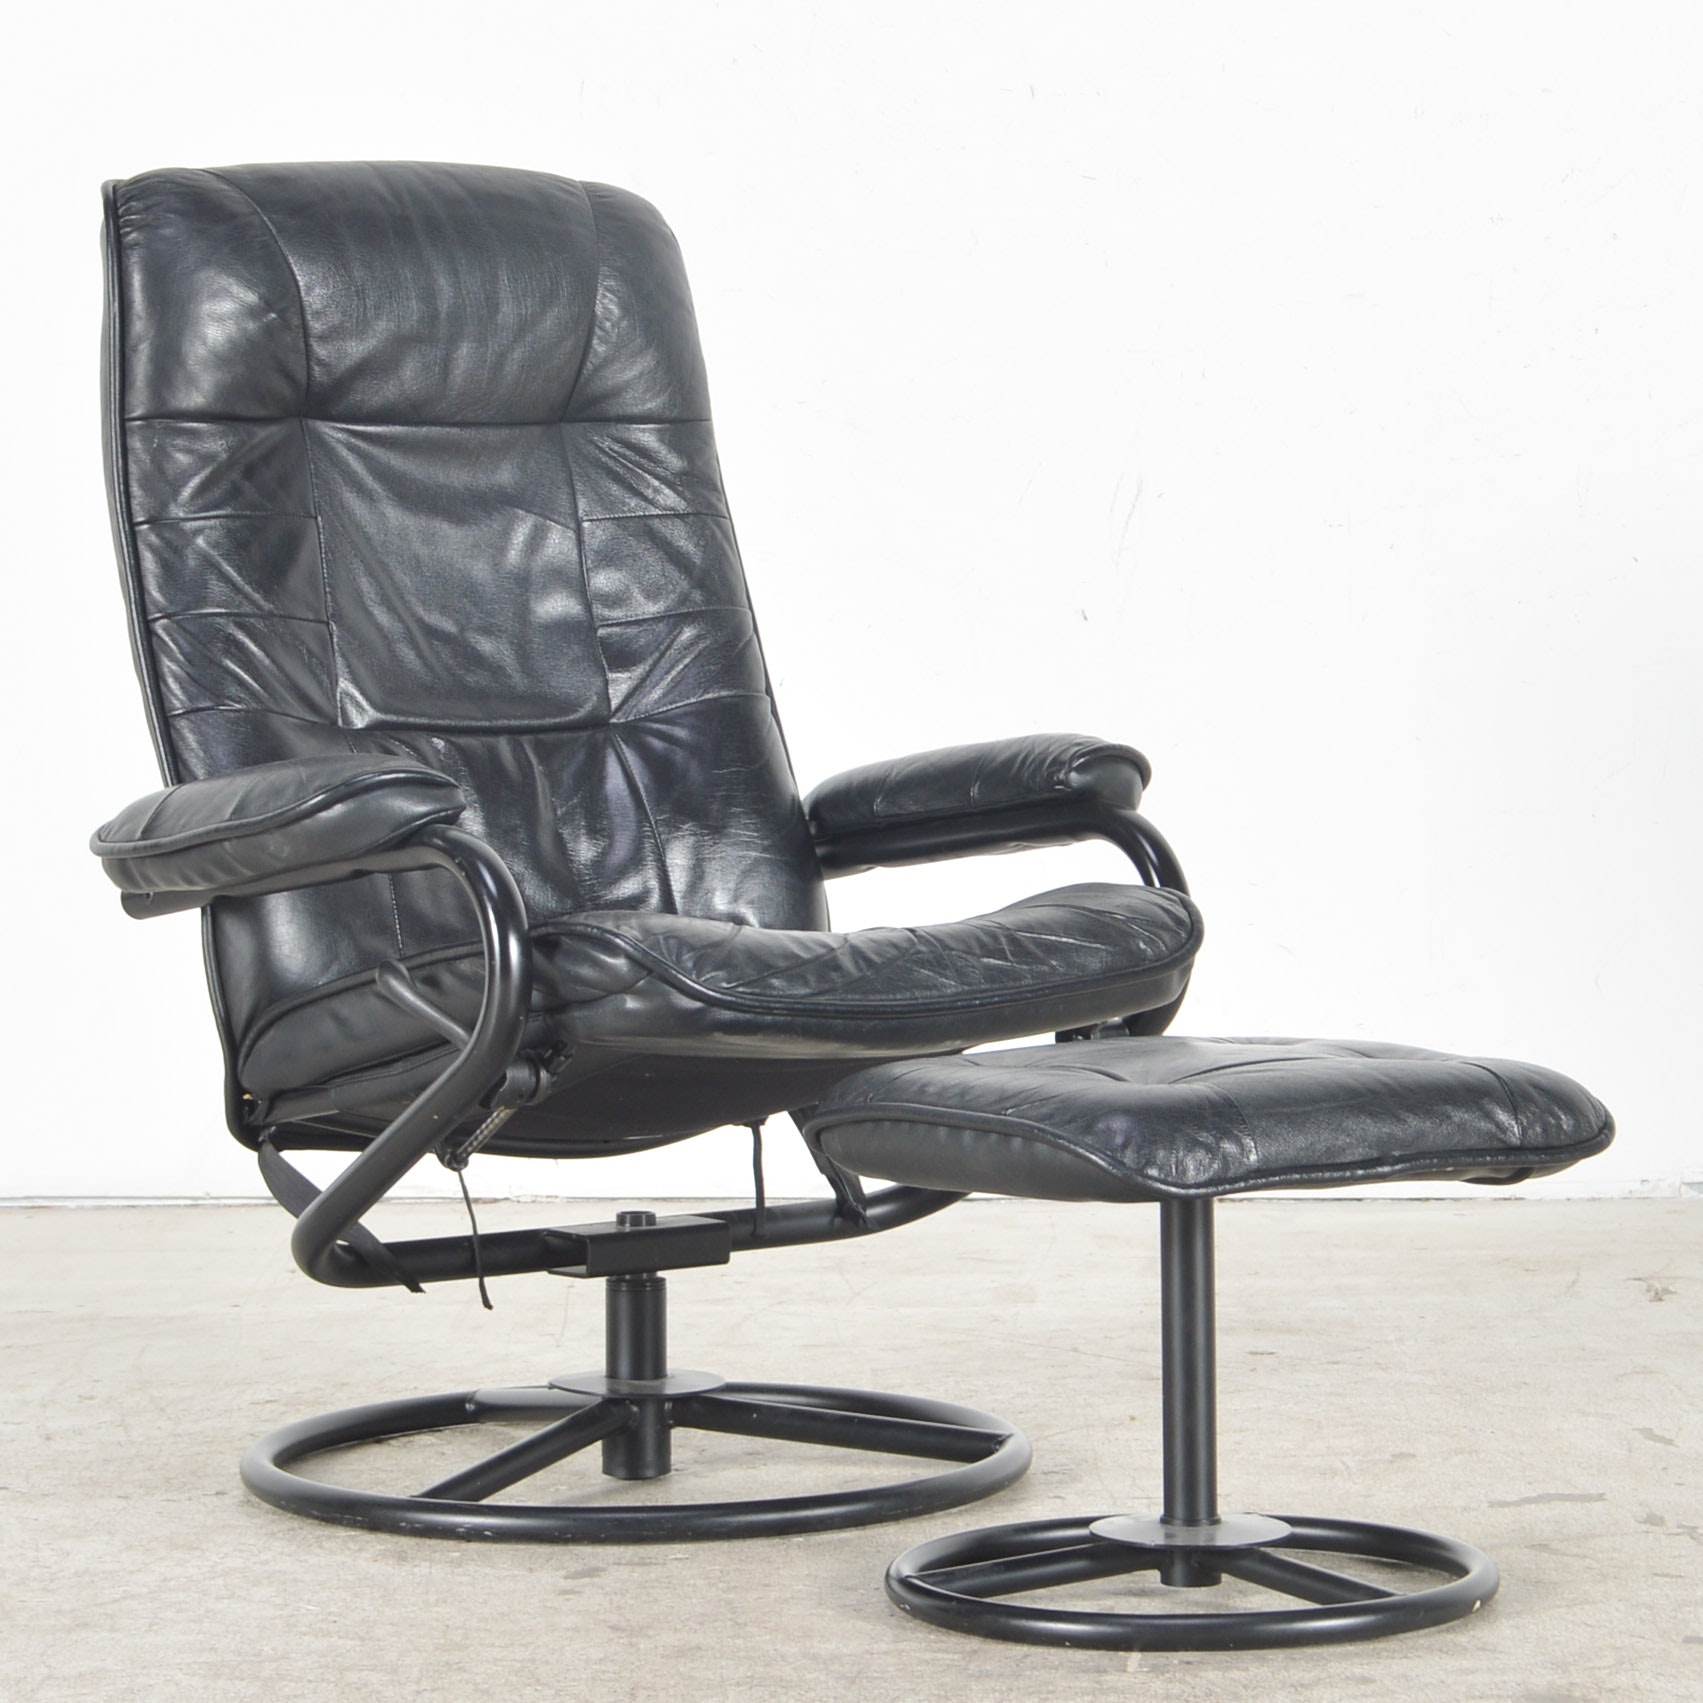 ChairWorks Reclining Leather Lounge Chair With Ottoman ...